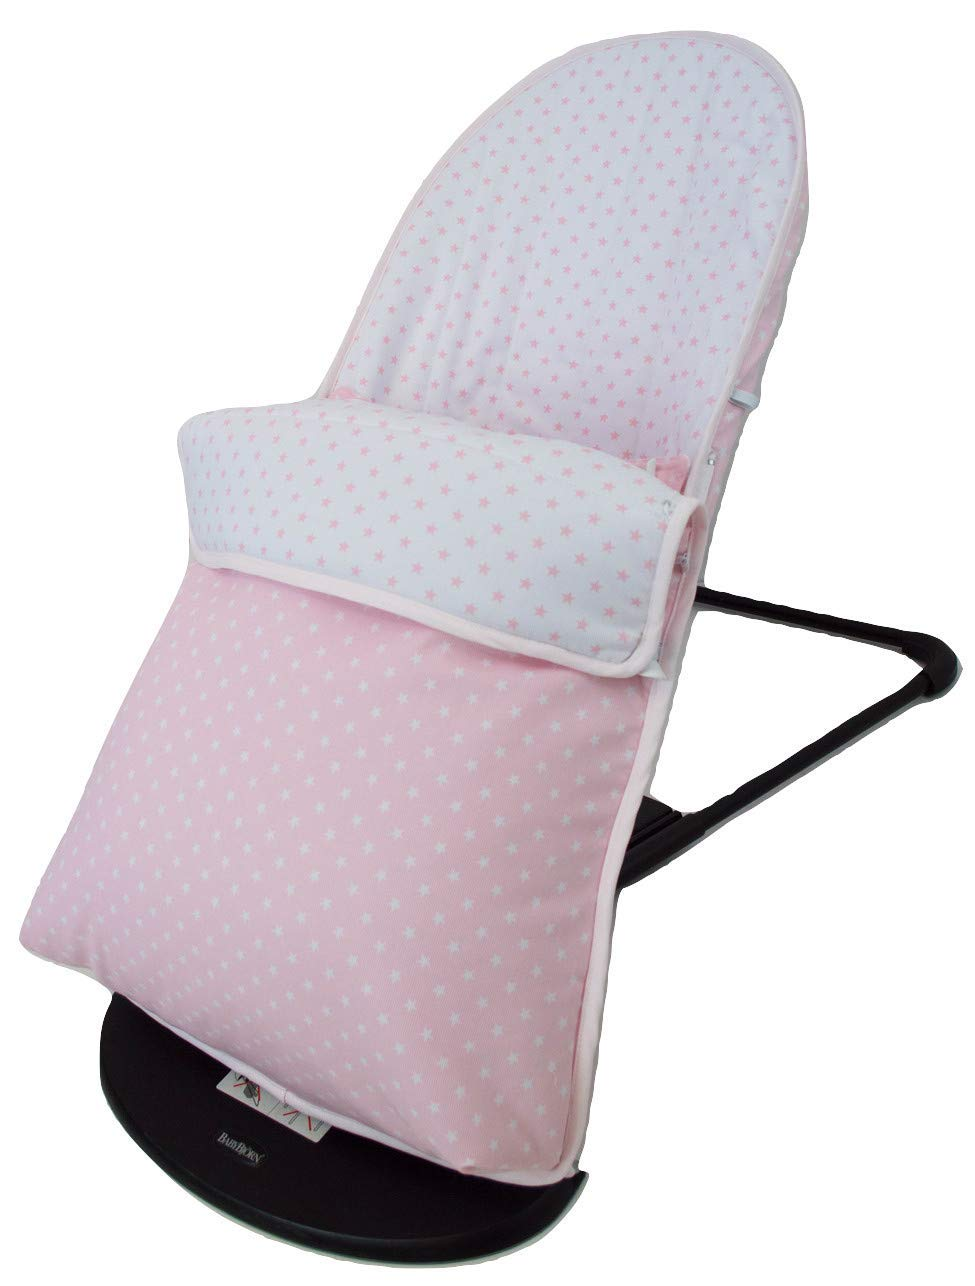 Baby Bouncer Cover and Footmuff for BabyBjörn Balance and Soft Personalized with Embroidered Name. Several Models Available (Stars Pink) Borda y más Upholstery for totally replacing the original Babybjörn baby bouncer upholstery. It consists of FOOTMUFF and COVER. Compatible with Babybjörn Balance and Babybjörn Balance Soft. Made in natural soft and breathable pique, without chemical substances perfect for your baby as it reduces your baby's skin irritation or reaction. With our footmuff changeable into cover you will keep your baby war in the coldest days at the same time you provide your baby bouncer a new image. You only need to fit together the cover and the upholstery by the zippers and velcro system. The footmuff adjustable to 3 different positions. You won't need to worry about the blanket again; your baby will be able to play and sleep without being cold. Design: Made in pink pique with white stars combined with white pique and pink stars. 100% made in Spain with the best finishes and qualities. It can be easily removed and wash in the washing machine, programmes lower than 30 degrees and using organic or neutral soap. 5